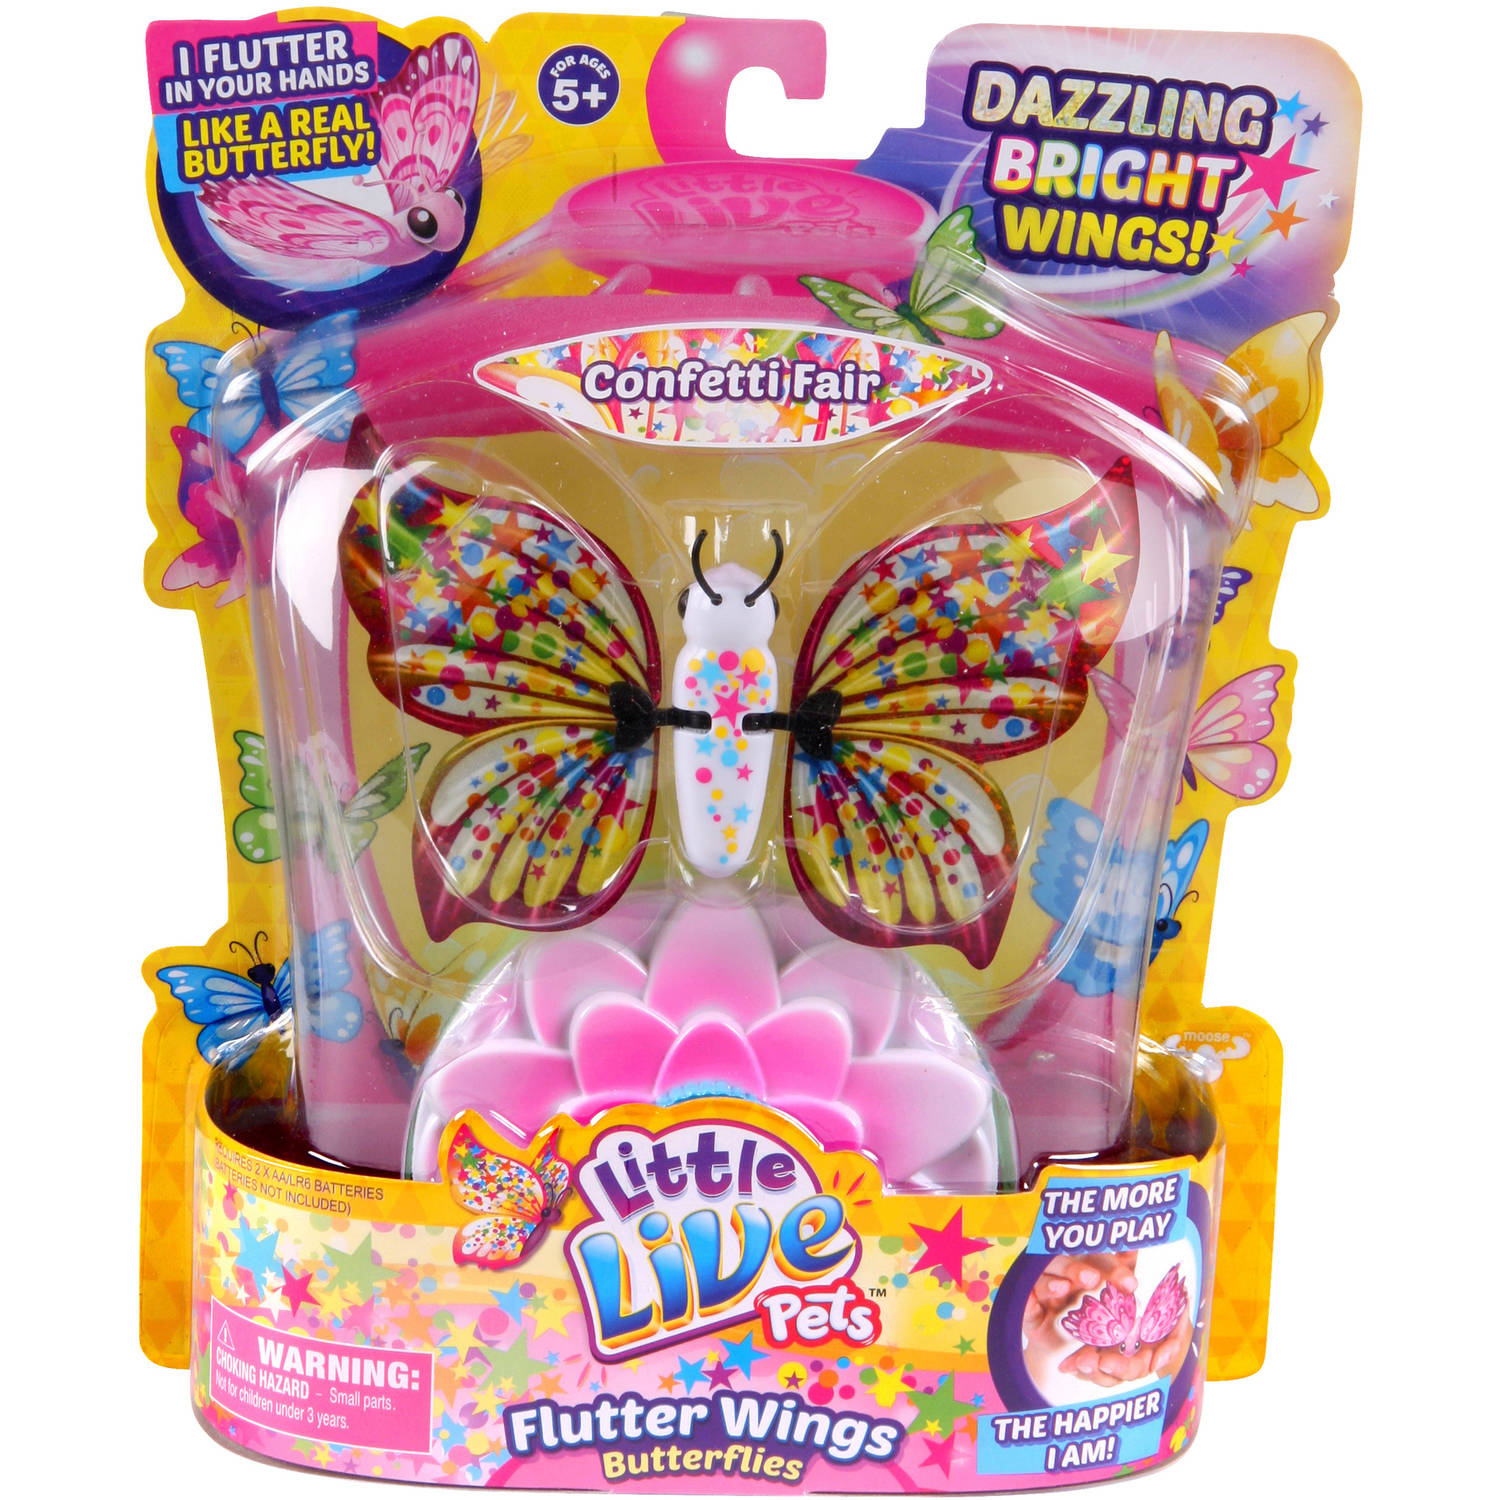 Moose Toys Little Live Pets Season 3 Butterfly Starter Pack, Confetti Fair